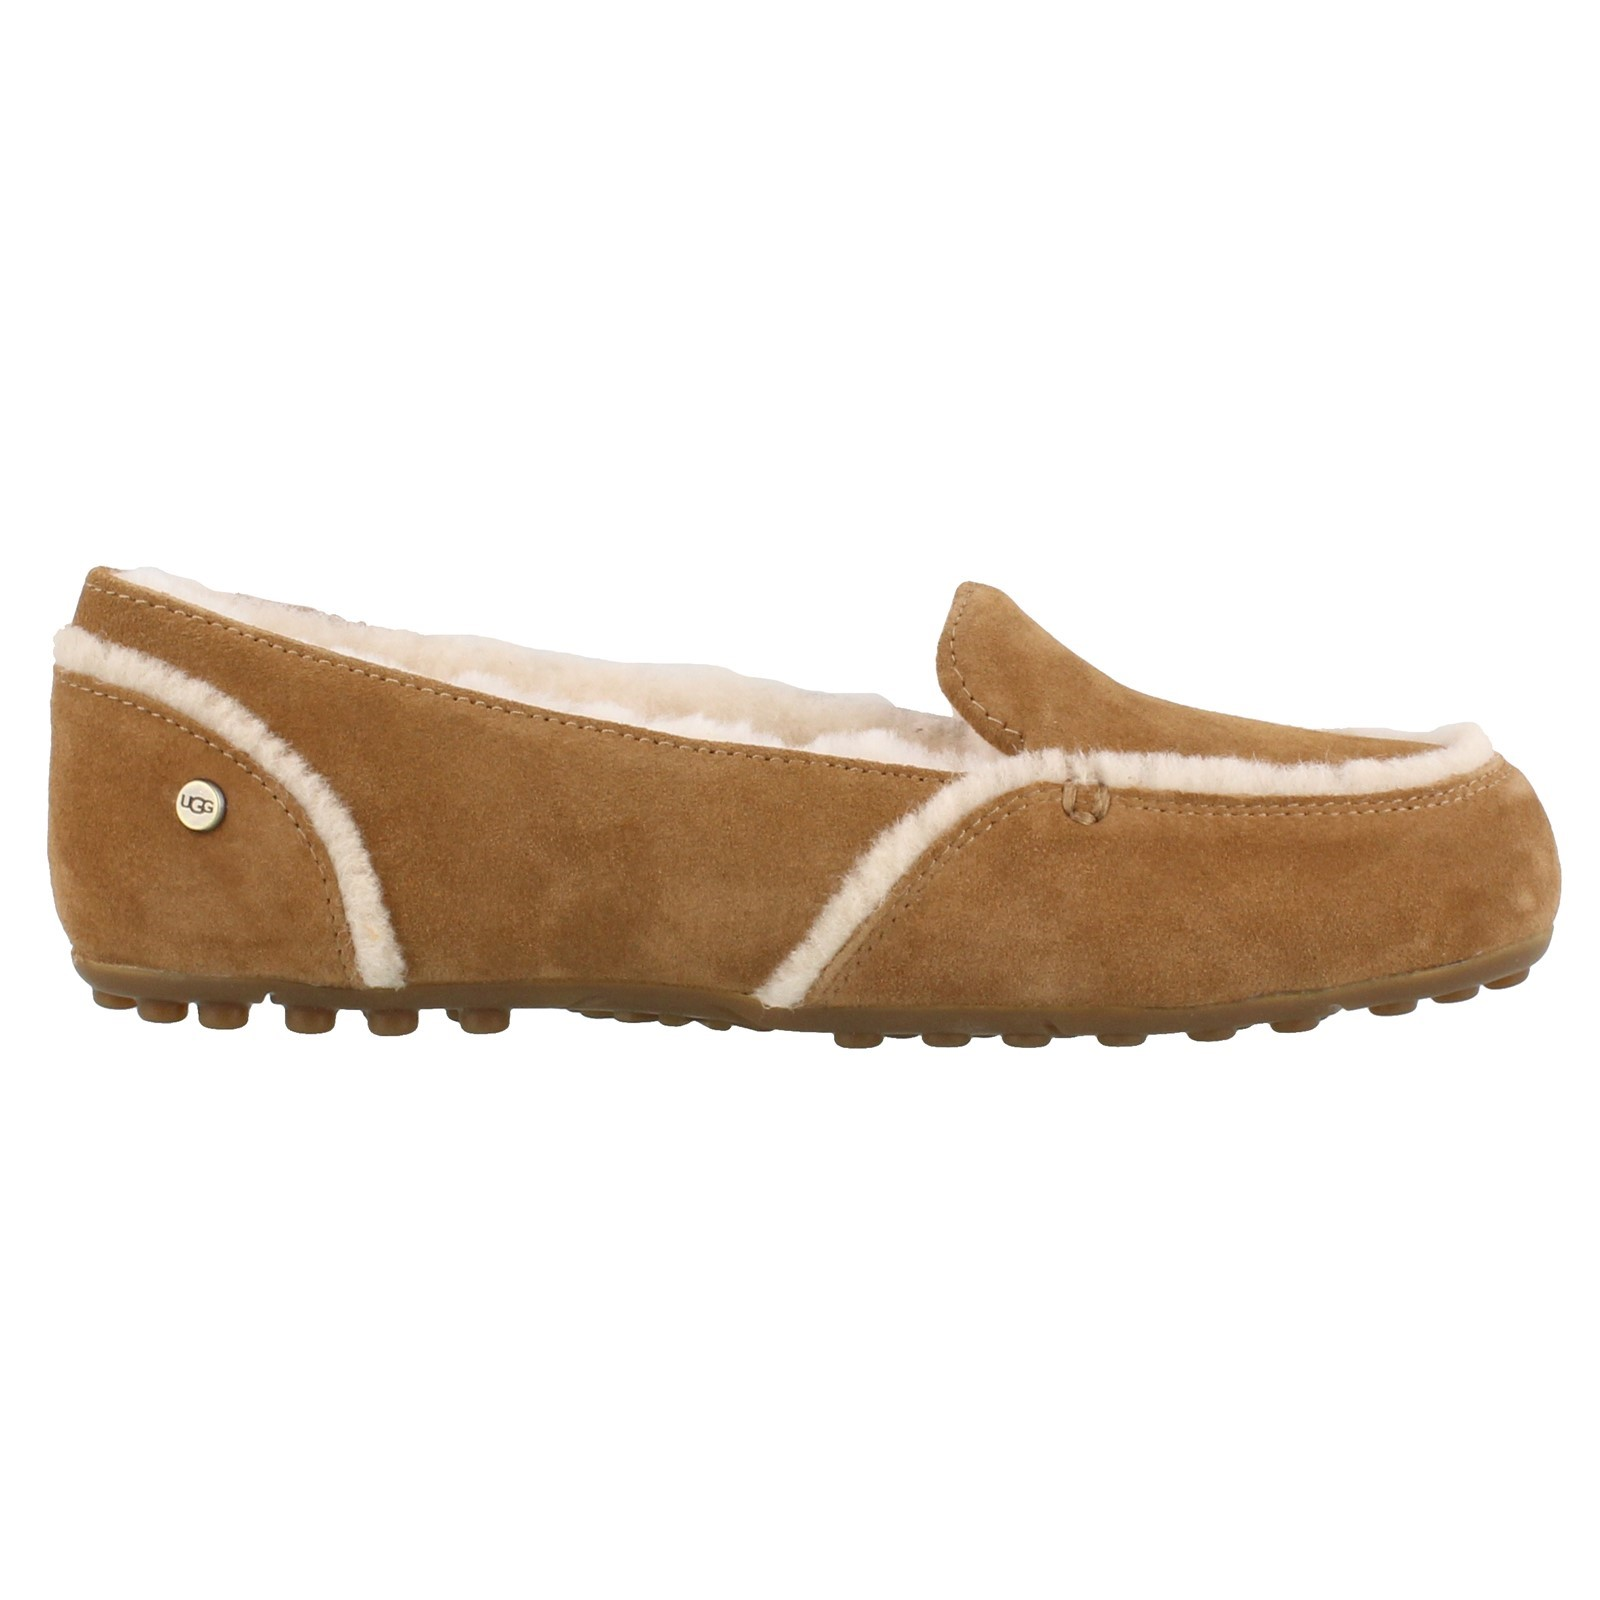 cfd6a755f9a Women's Ugg, Hailey Slippers